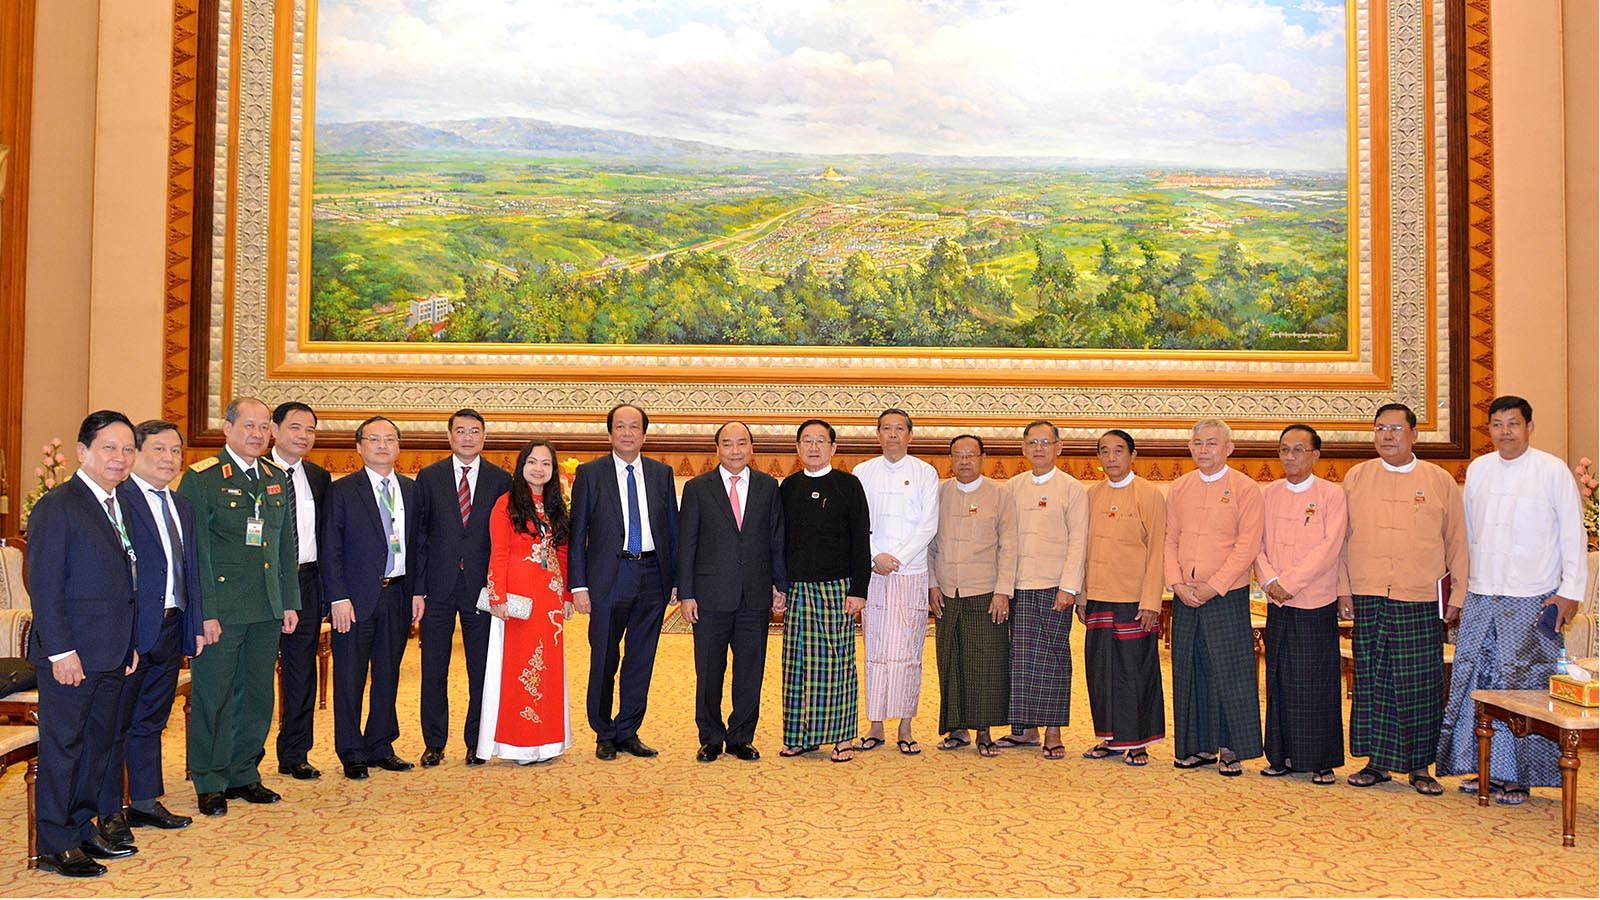 Pyithu Hluttaw Speaker U T Khun Myat and delegation pose for a documentary photo with Prime Minister of Viet Nam, Mr Nguyen Xuan Phuc at the Hluttaw Building in Nay Pyi Taw on 17 December, 2019.